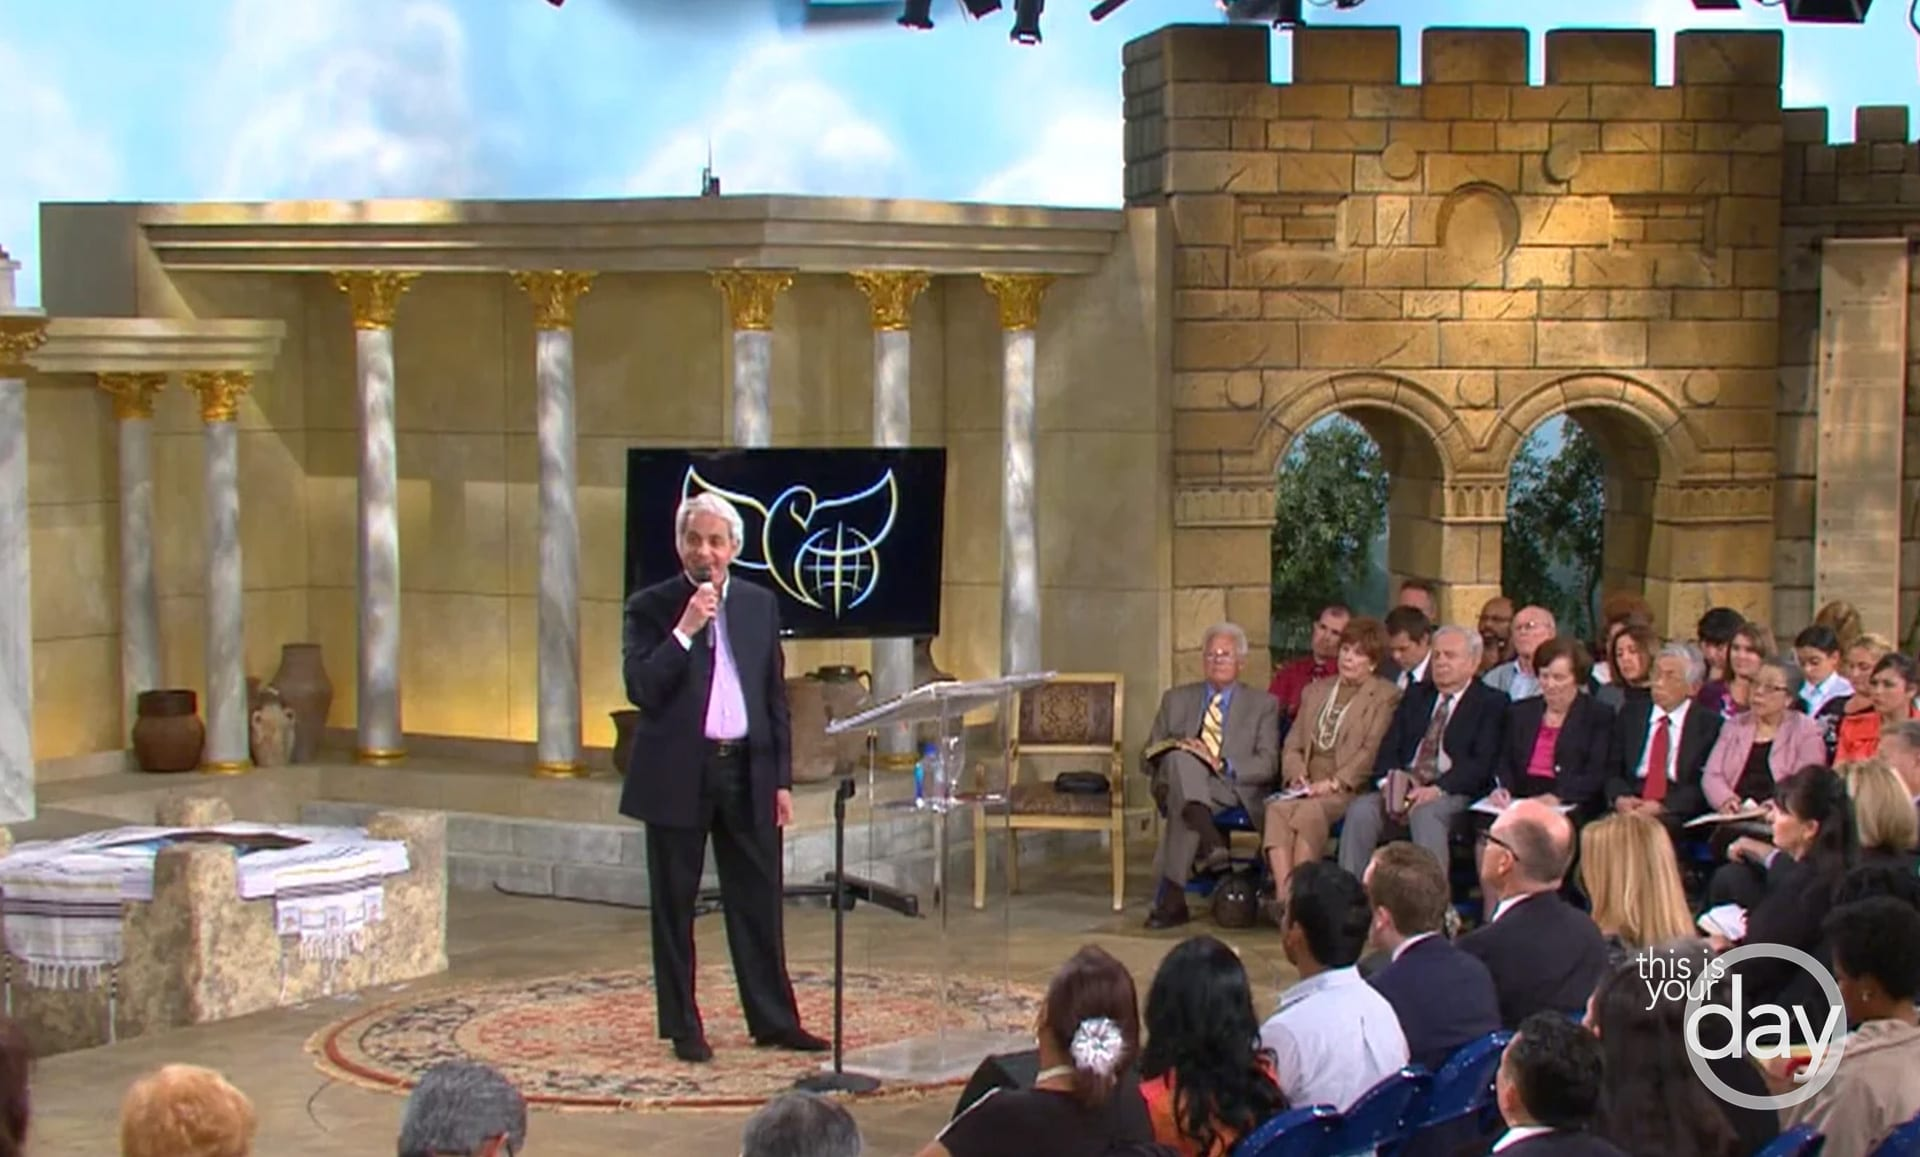 Key to Entering God's Presence P1 - This Is Your Day - Benny Hinn Ministries